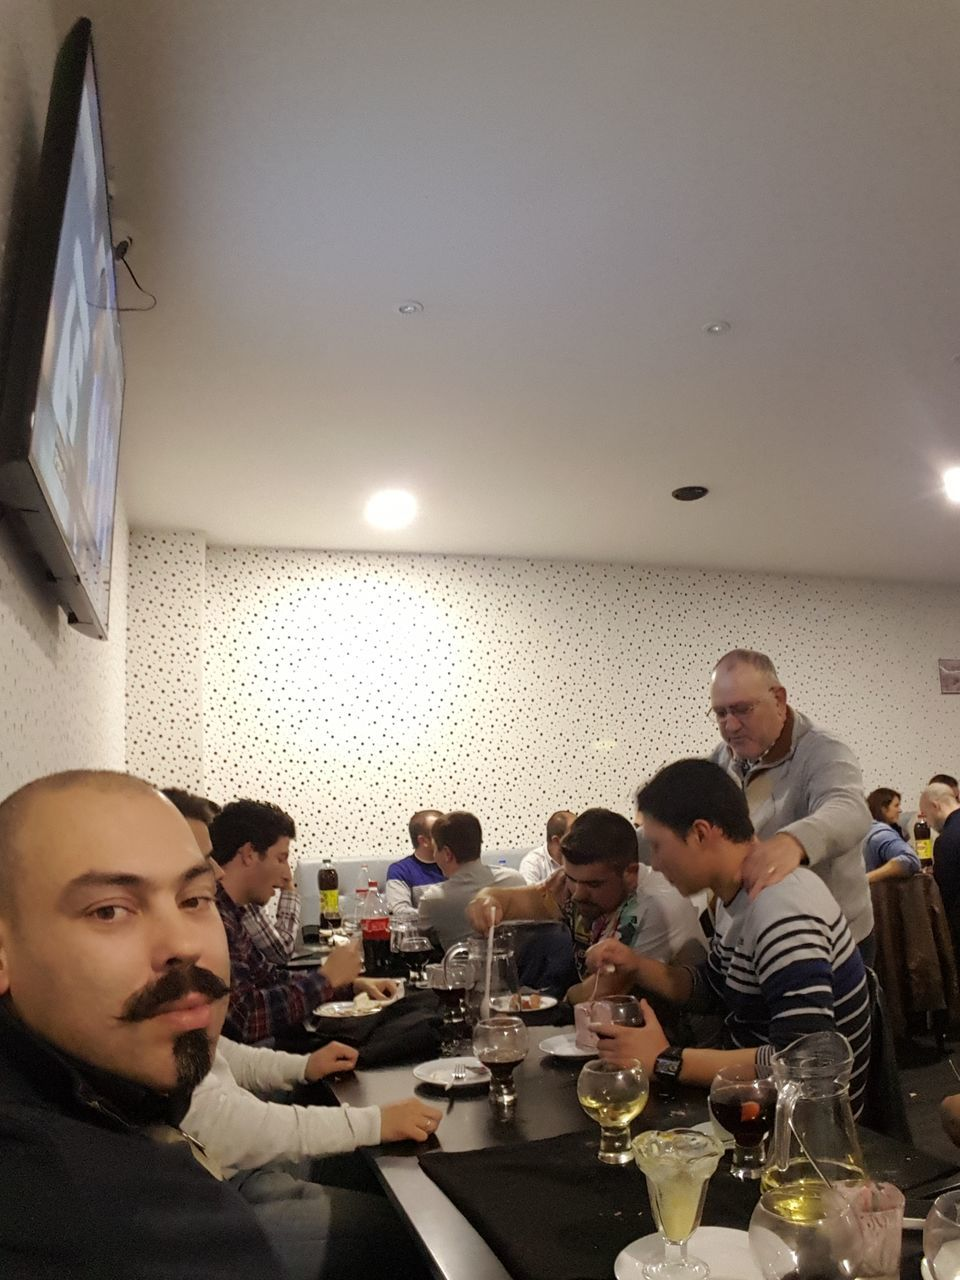 real people, indoors, food and drink, table, restaurant, mid adult men, sitting, leisure activity, togetherness, lifestyles, drink, young men, casual clothing, illuminated, wine, men, food, young adult, large group of people, friendship, alcohol, wineglass, young women, day, adult, people